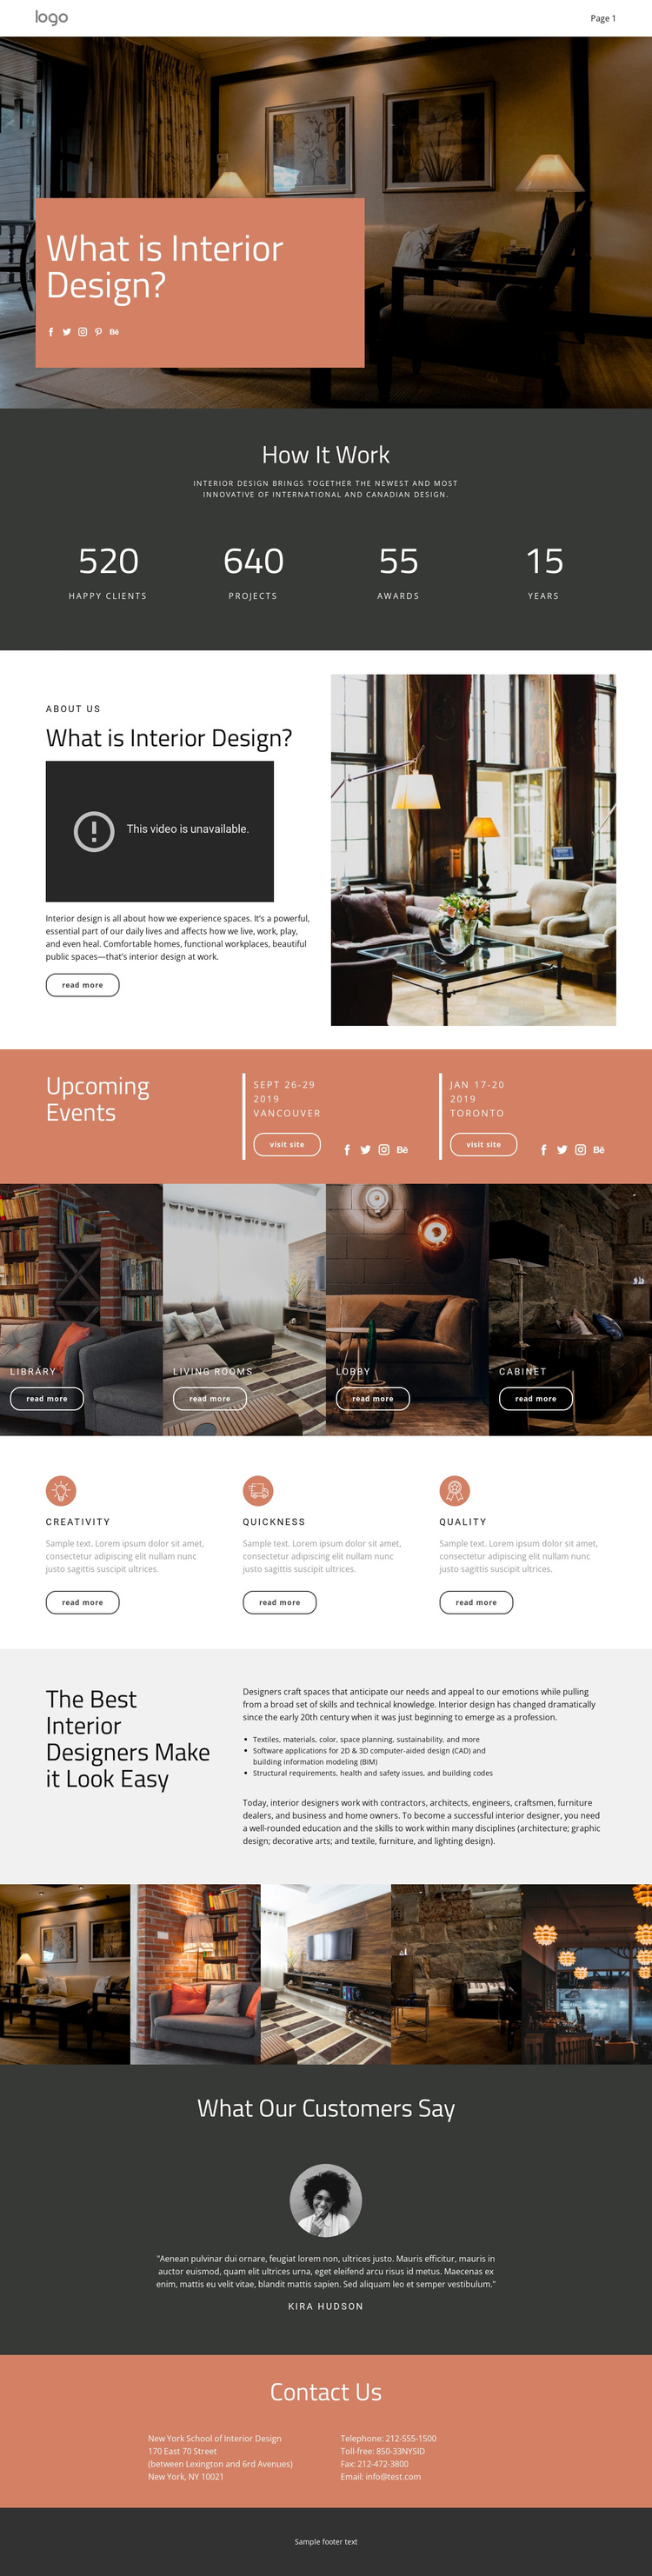 Design of houses and apartments Website Builder Software